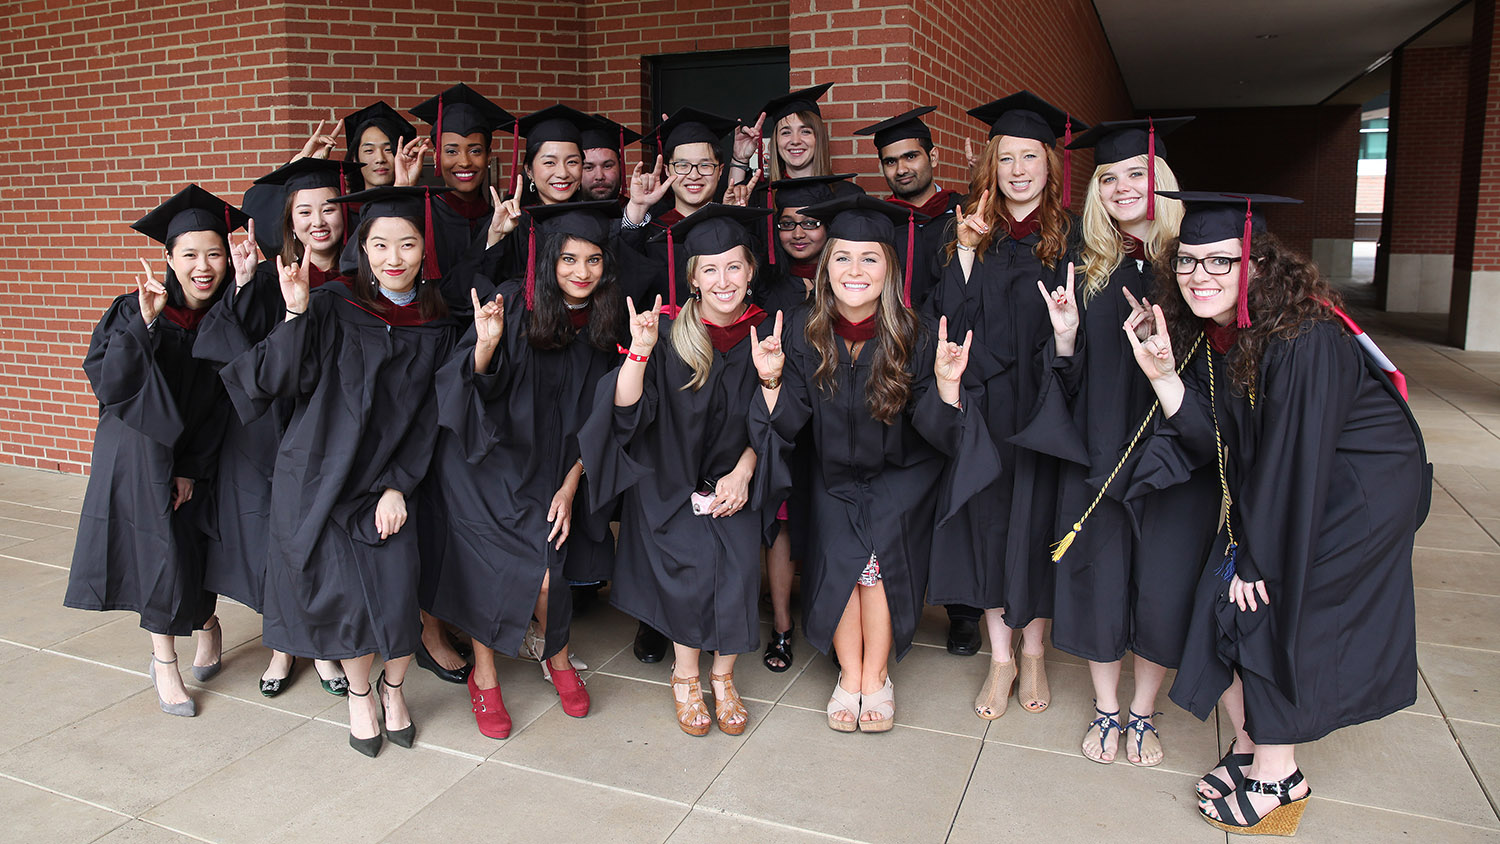 Spring 2017 commencement group photo of master's students